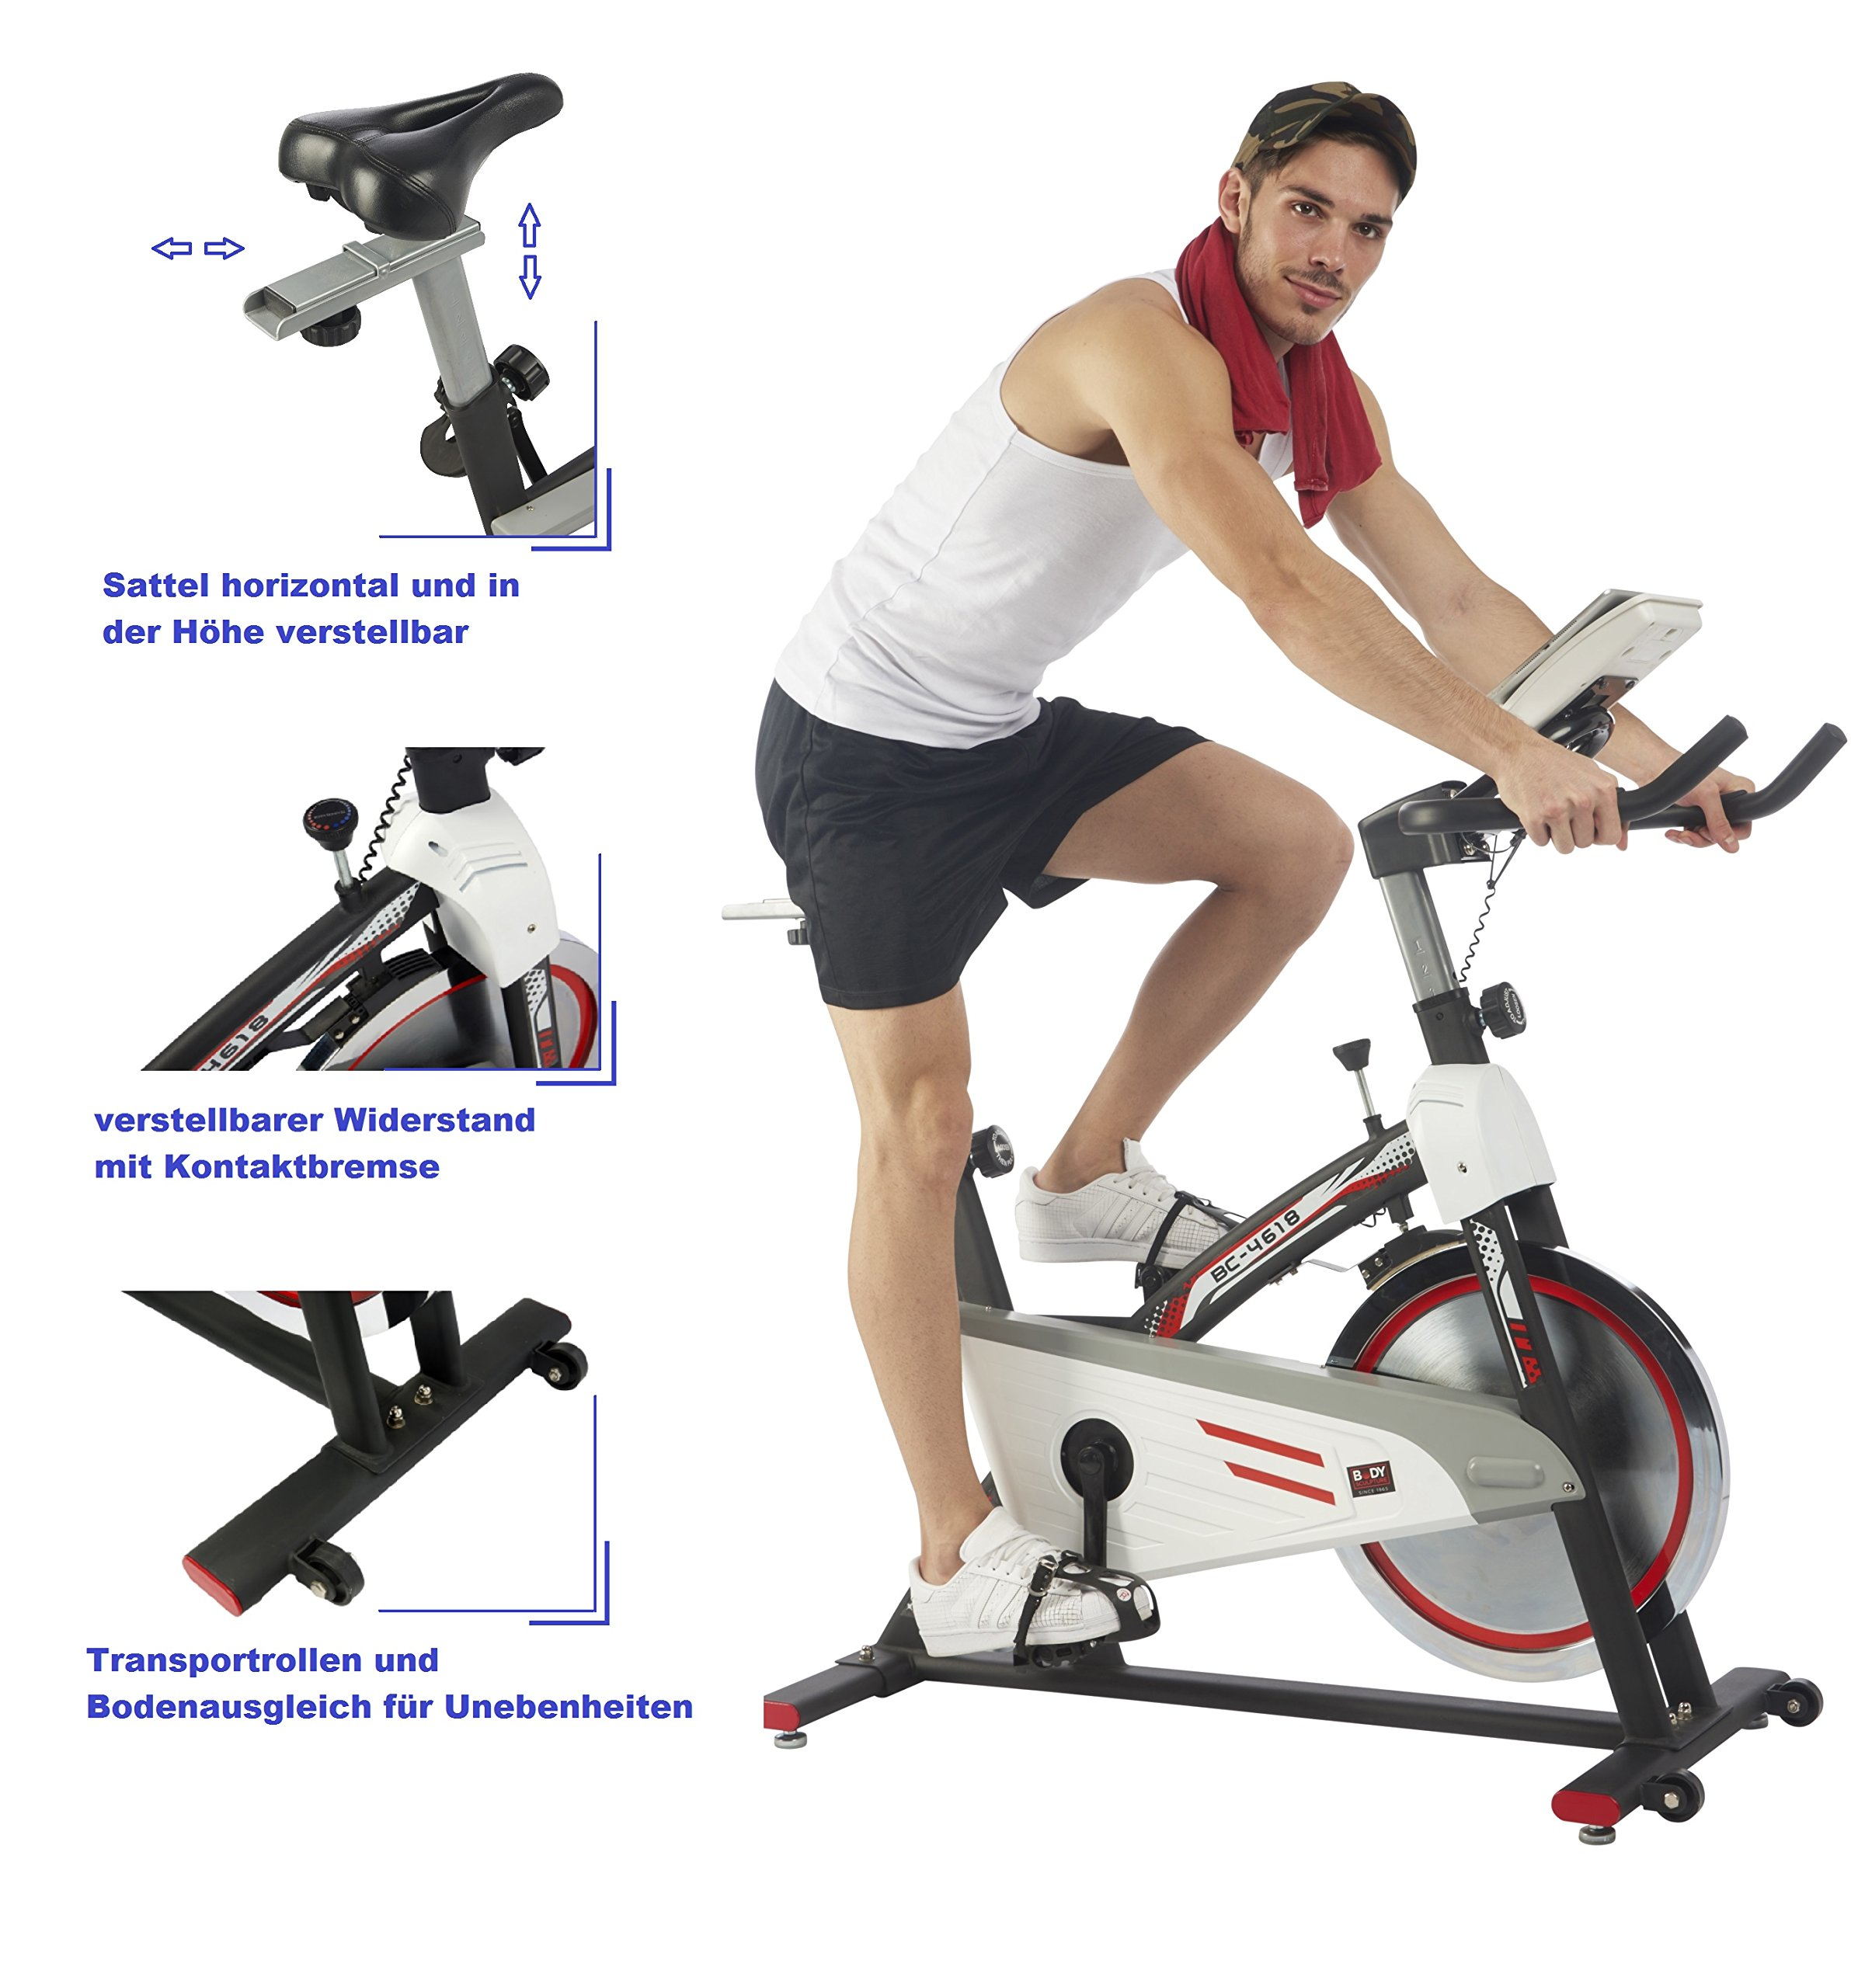 Body Sculpture - Bicicleta de entrenamiento interior Racing Bike ...